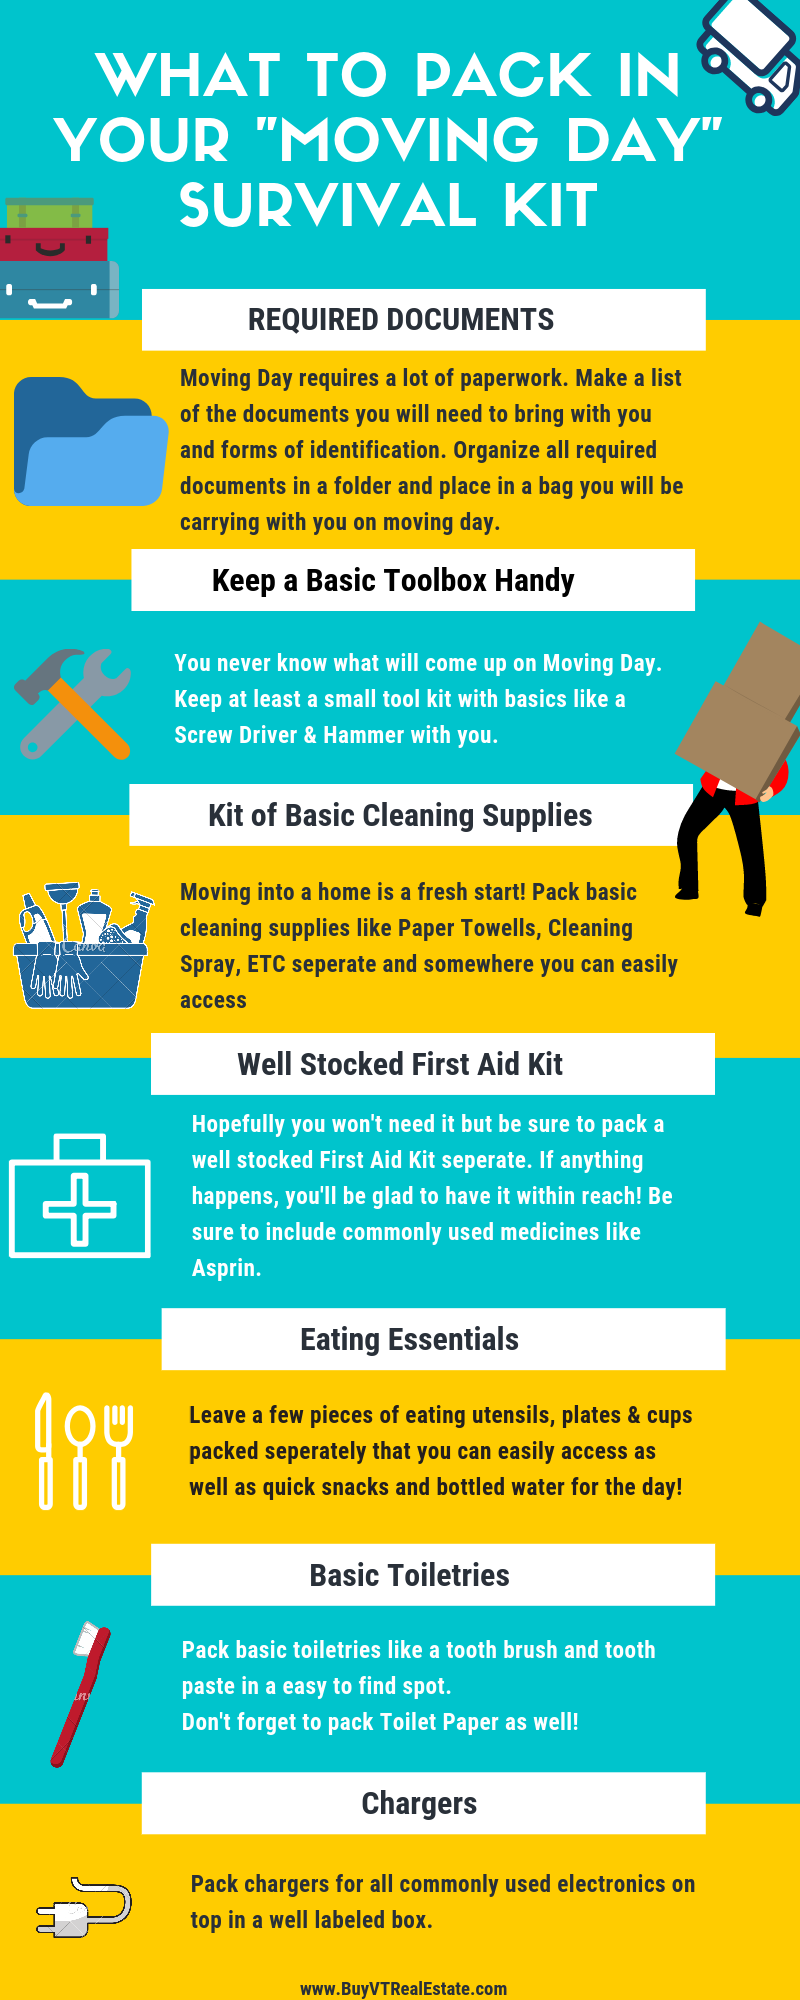 What to Pack in Your Moving Day Survival Kit